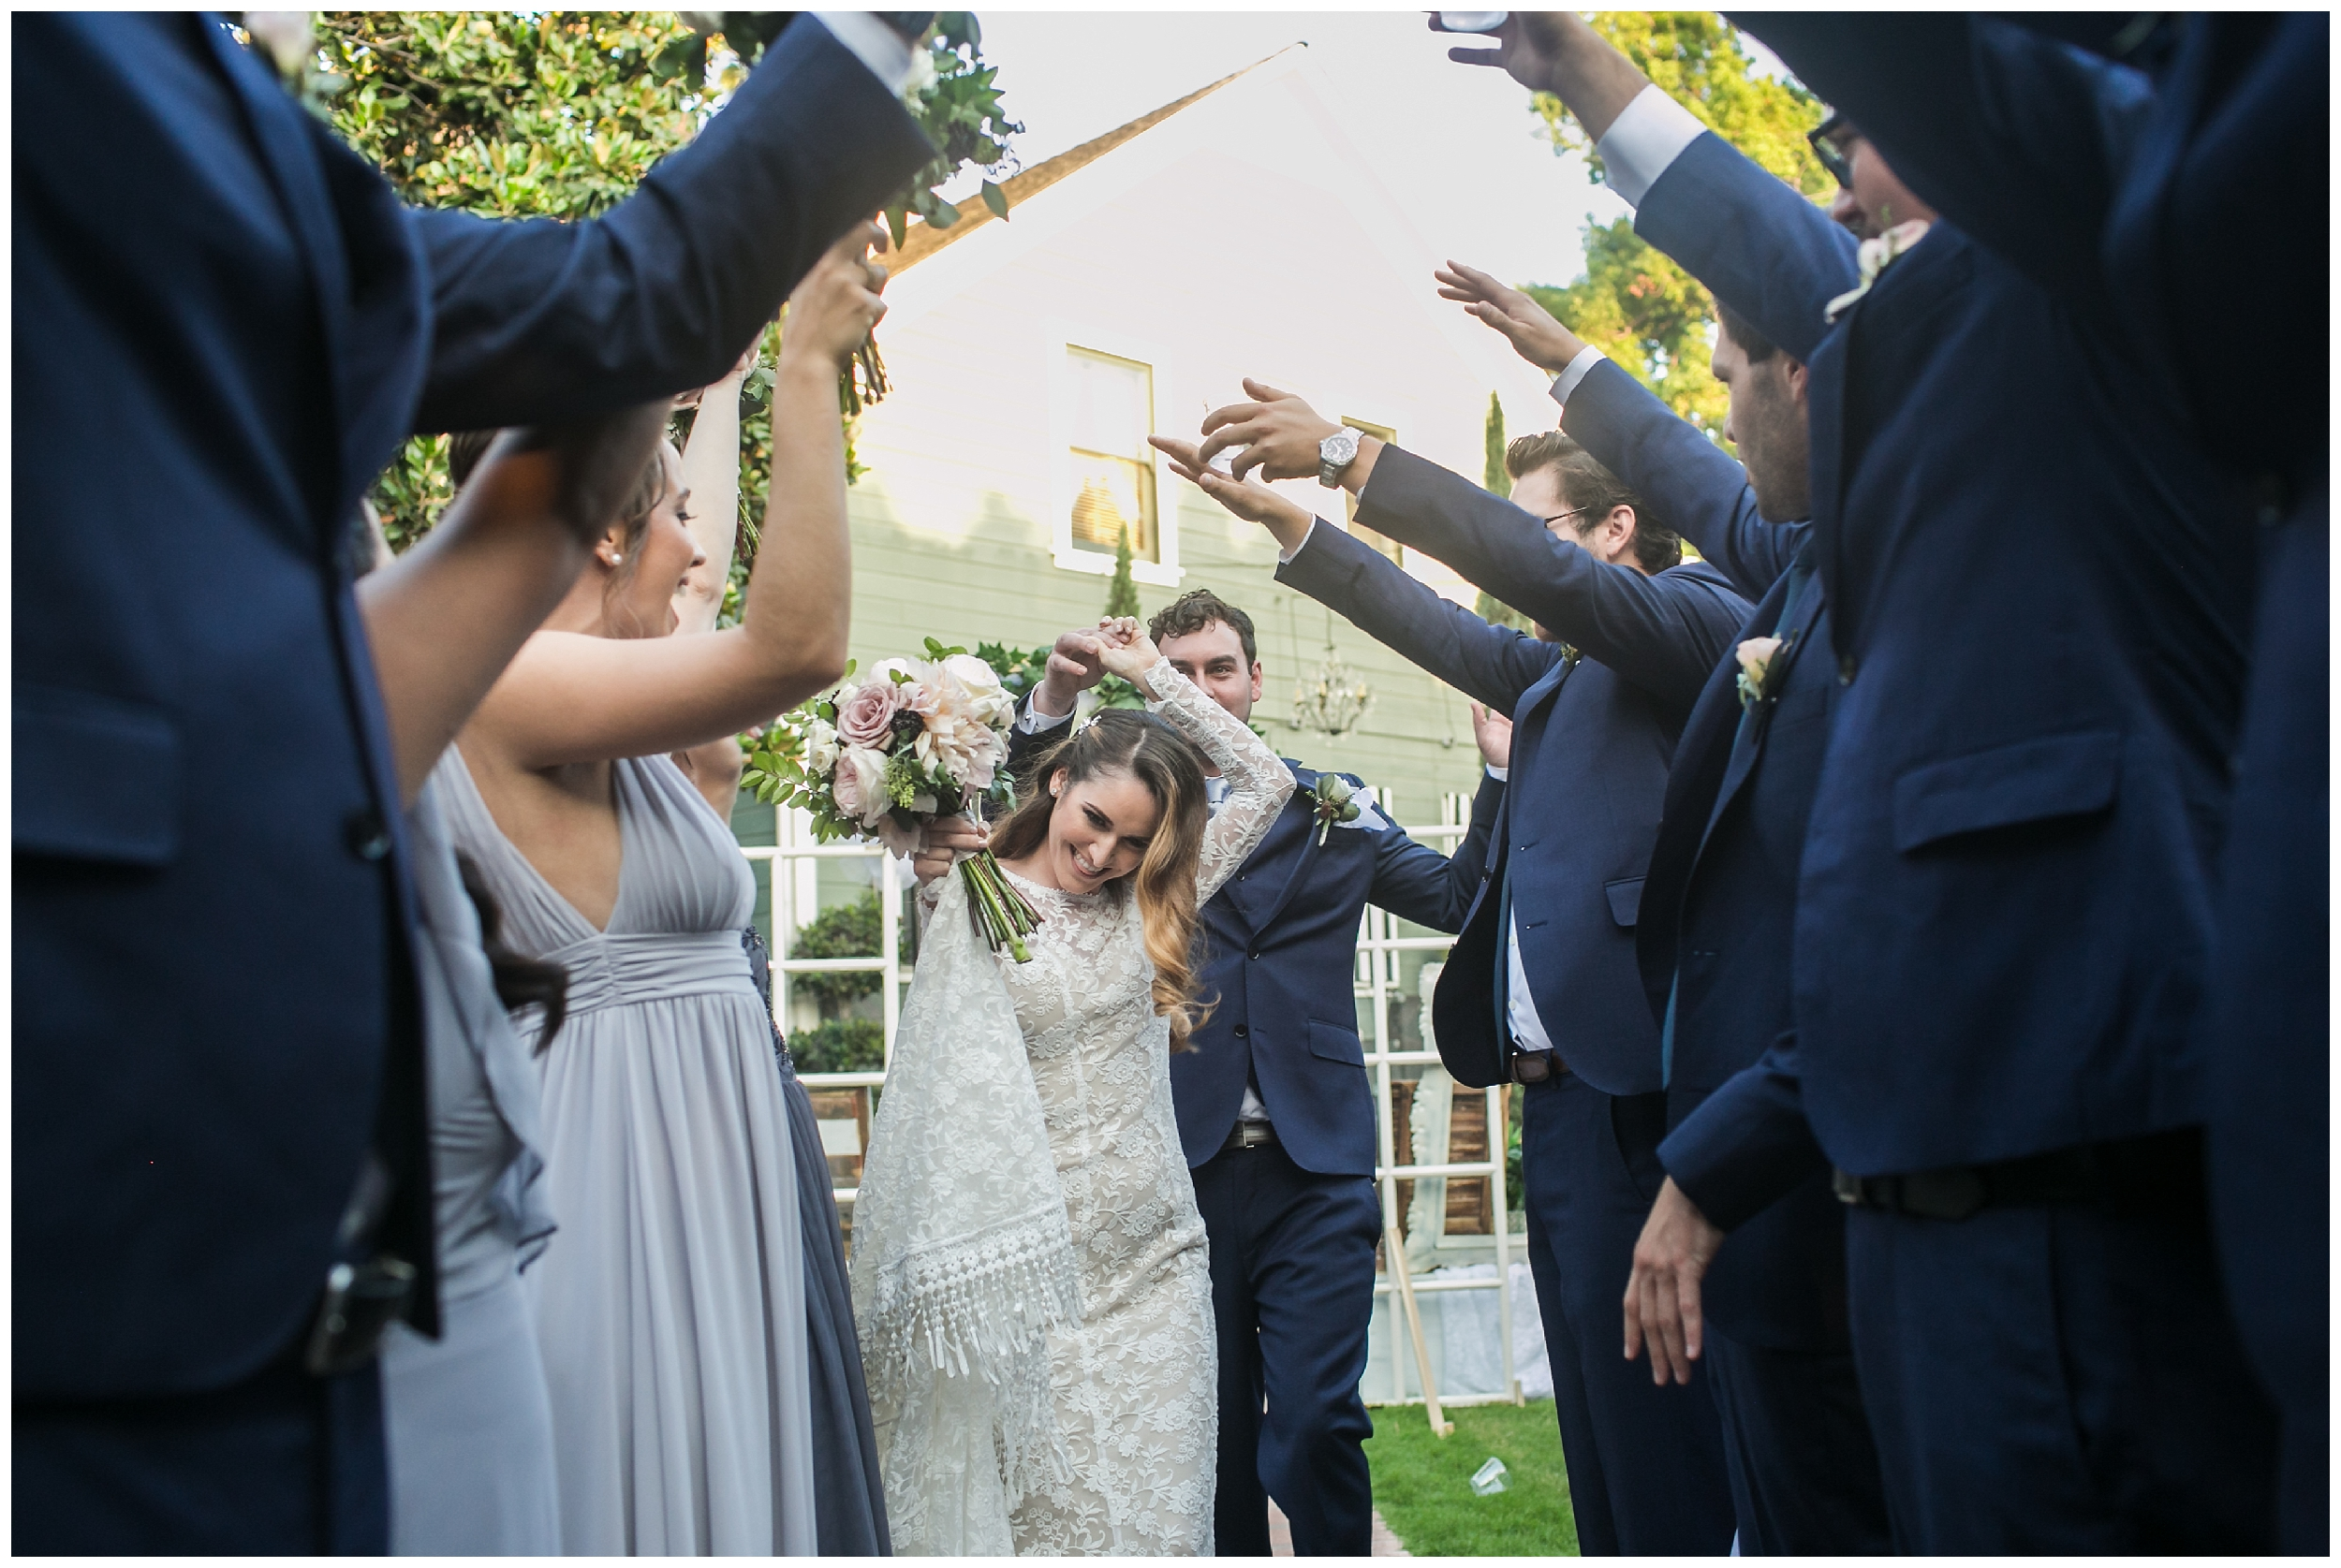 chic-christmas-house-wedding-reception-toasts-carrie-vines-027.jpg